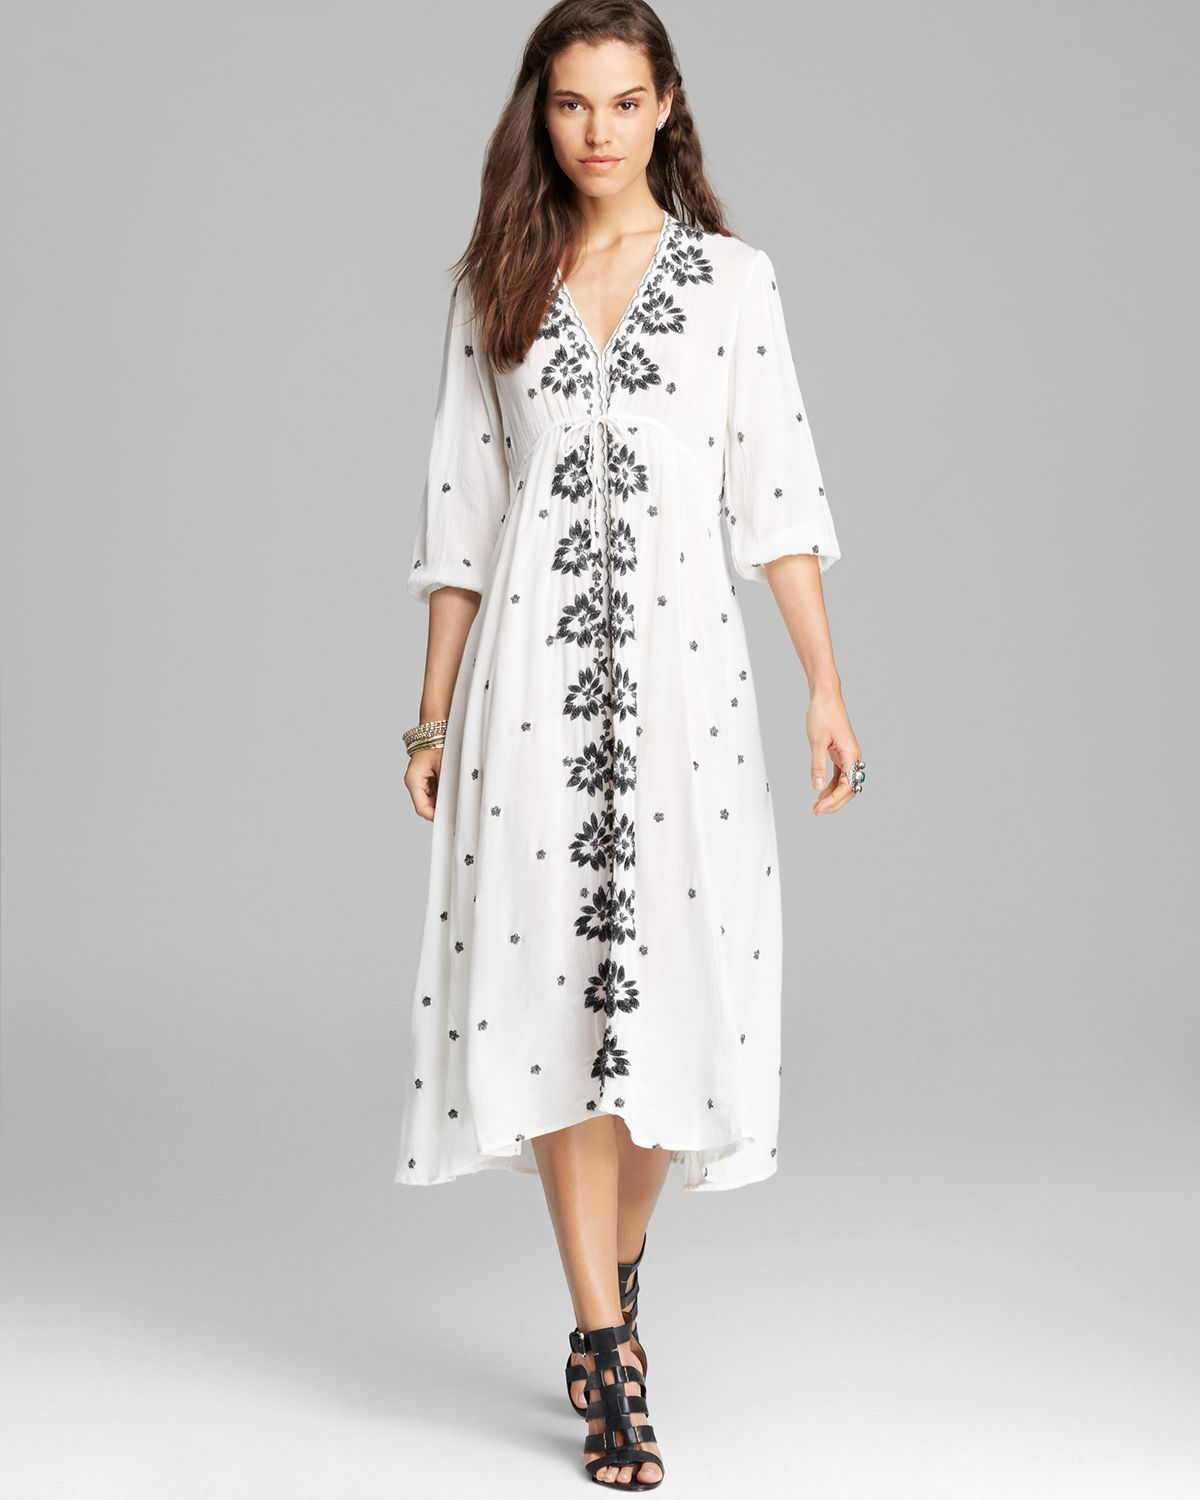 Lyst - Free People Dress Embroidered in White e04f765620